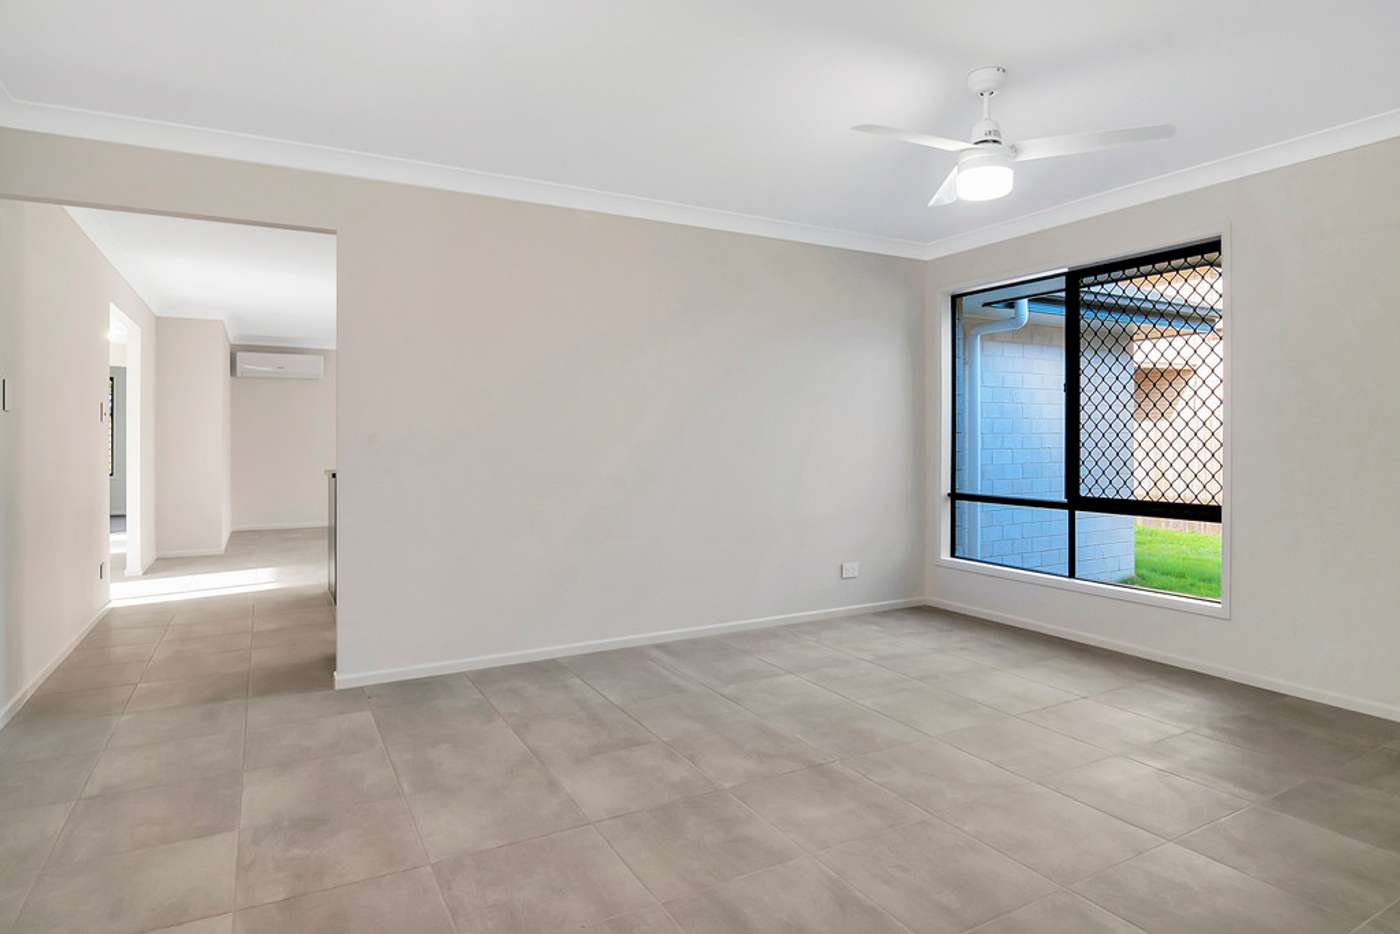 Fifth view of Homely house listing, 21 Redwood Street, Marsden QLD 4132